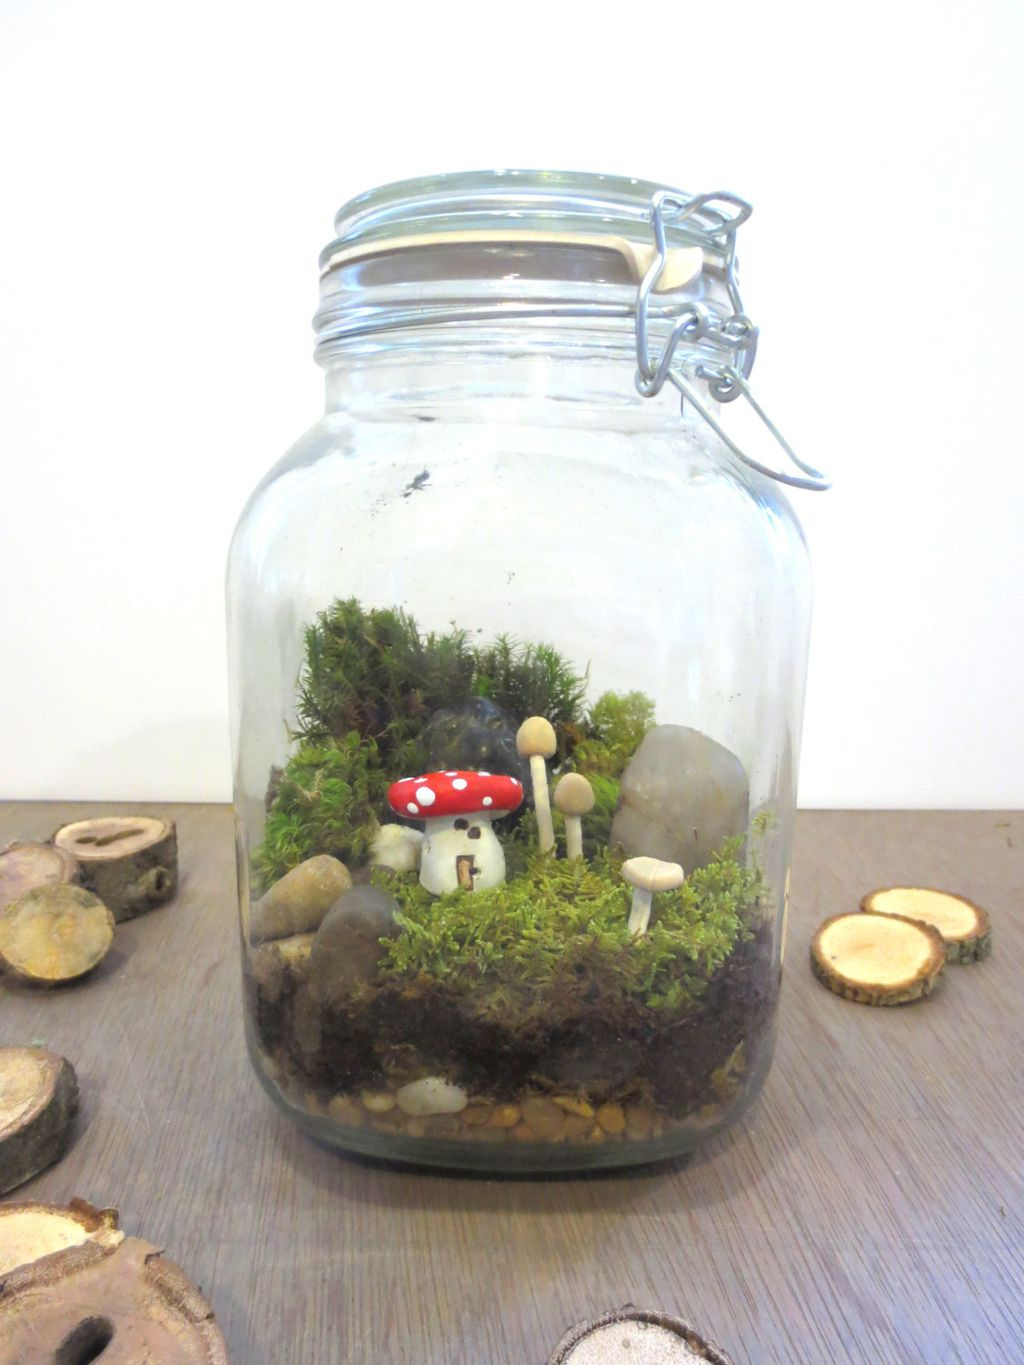 Fairy garden terrarium idea | Crafts | Pinterest | Garden terrarium ...